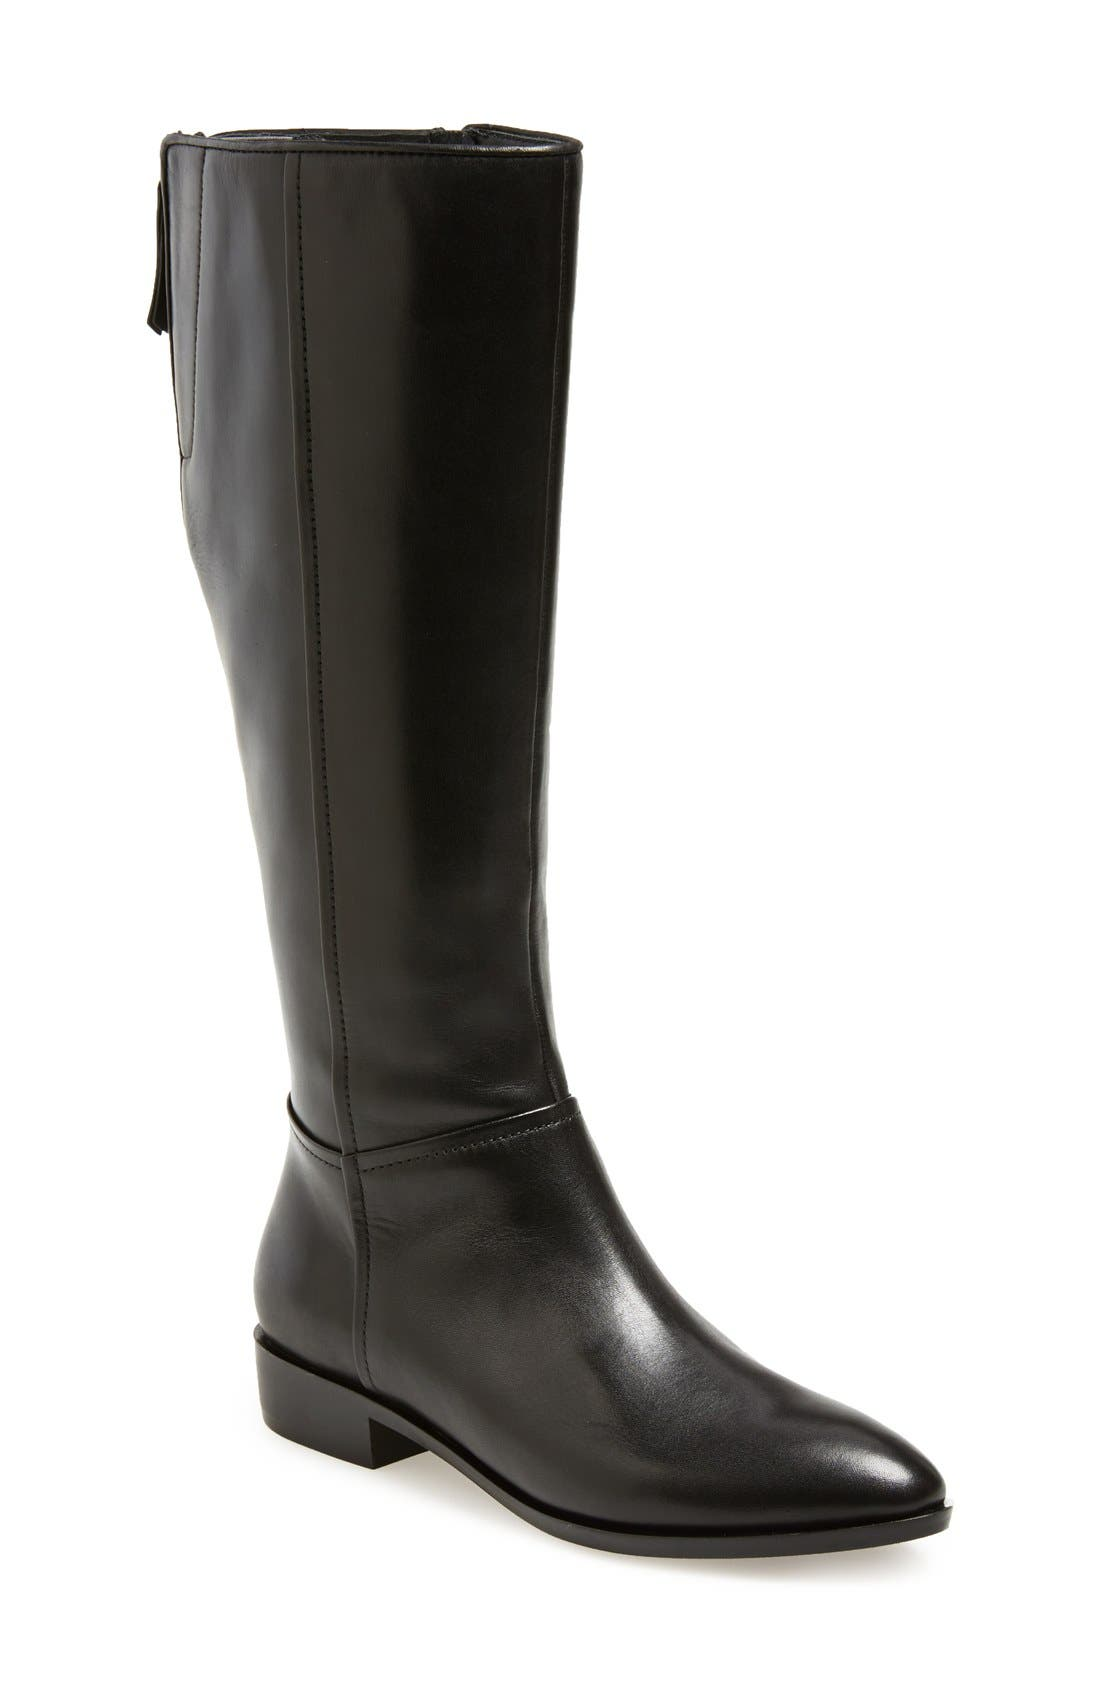 Main Image - Geox 'Lover' Boot (Women)